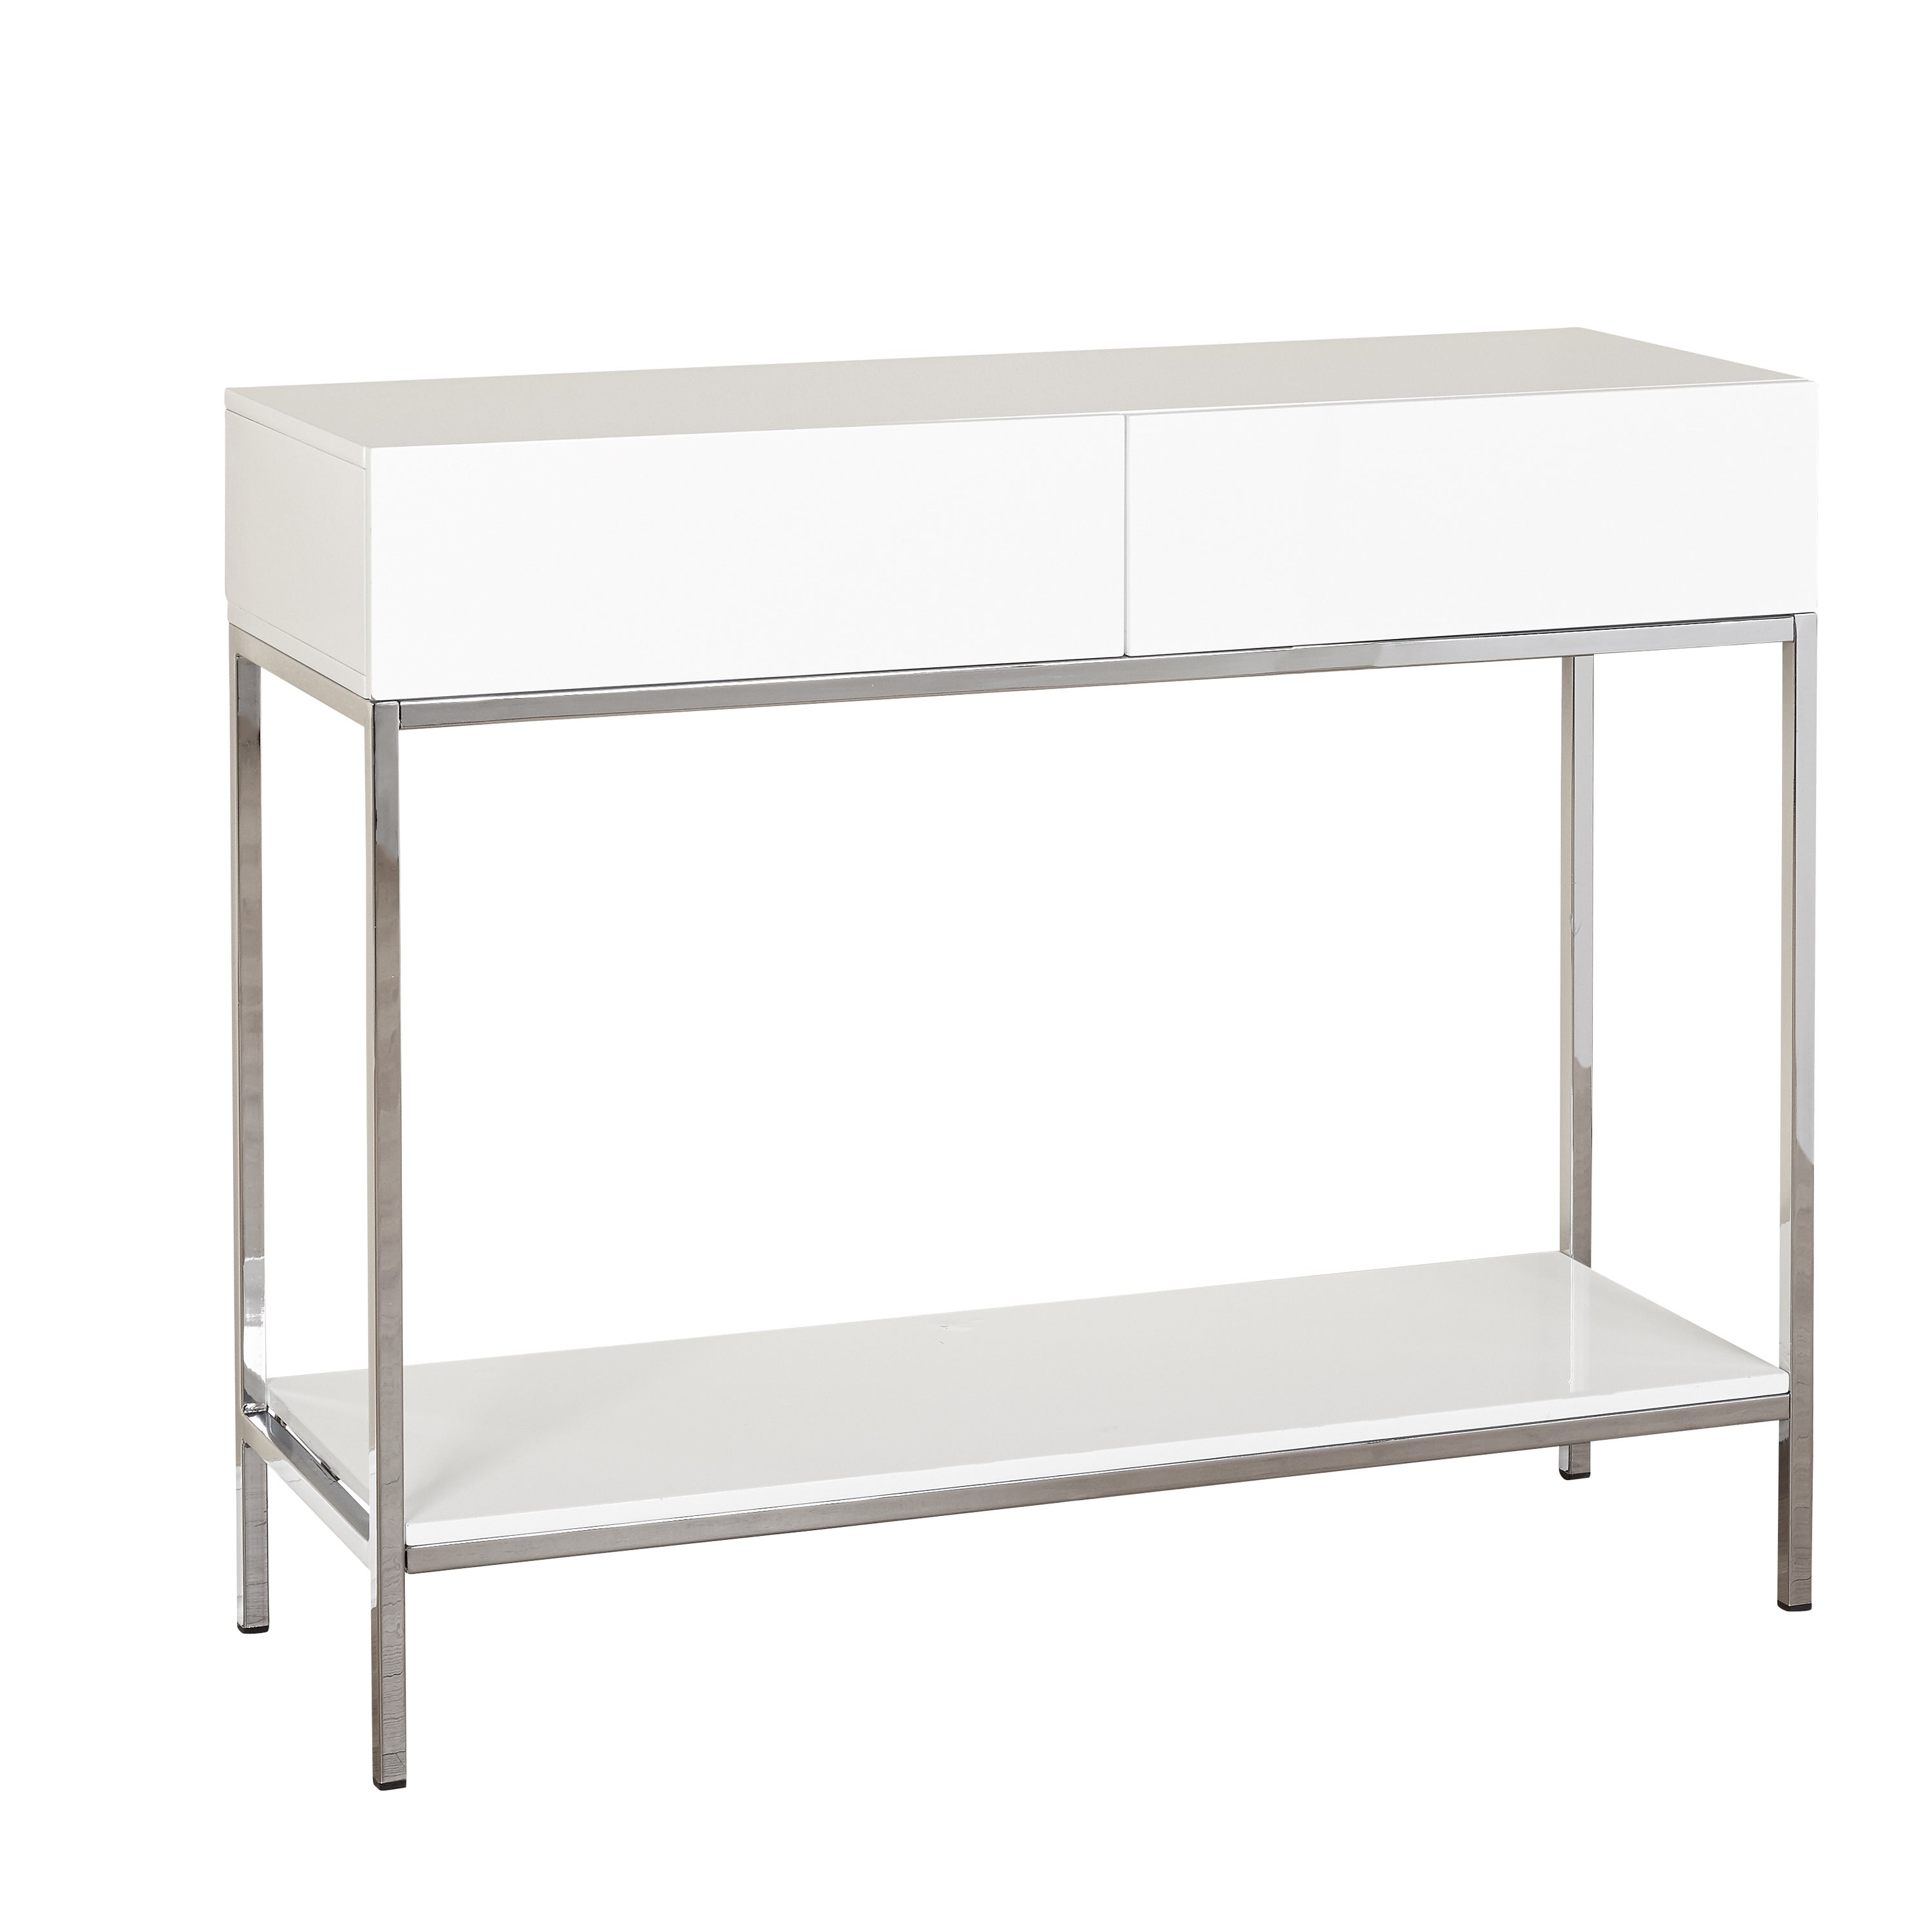 Simple Living White Wood And Chrome Metal High Gloss Console Table Pertaining To White Wood And Chrome Metal High Gloss Buffets (View 16 of 20)